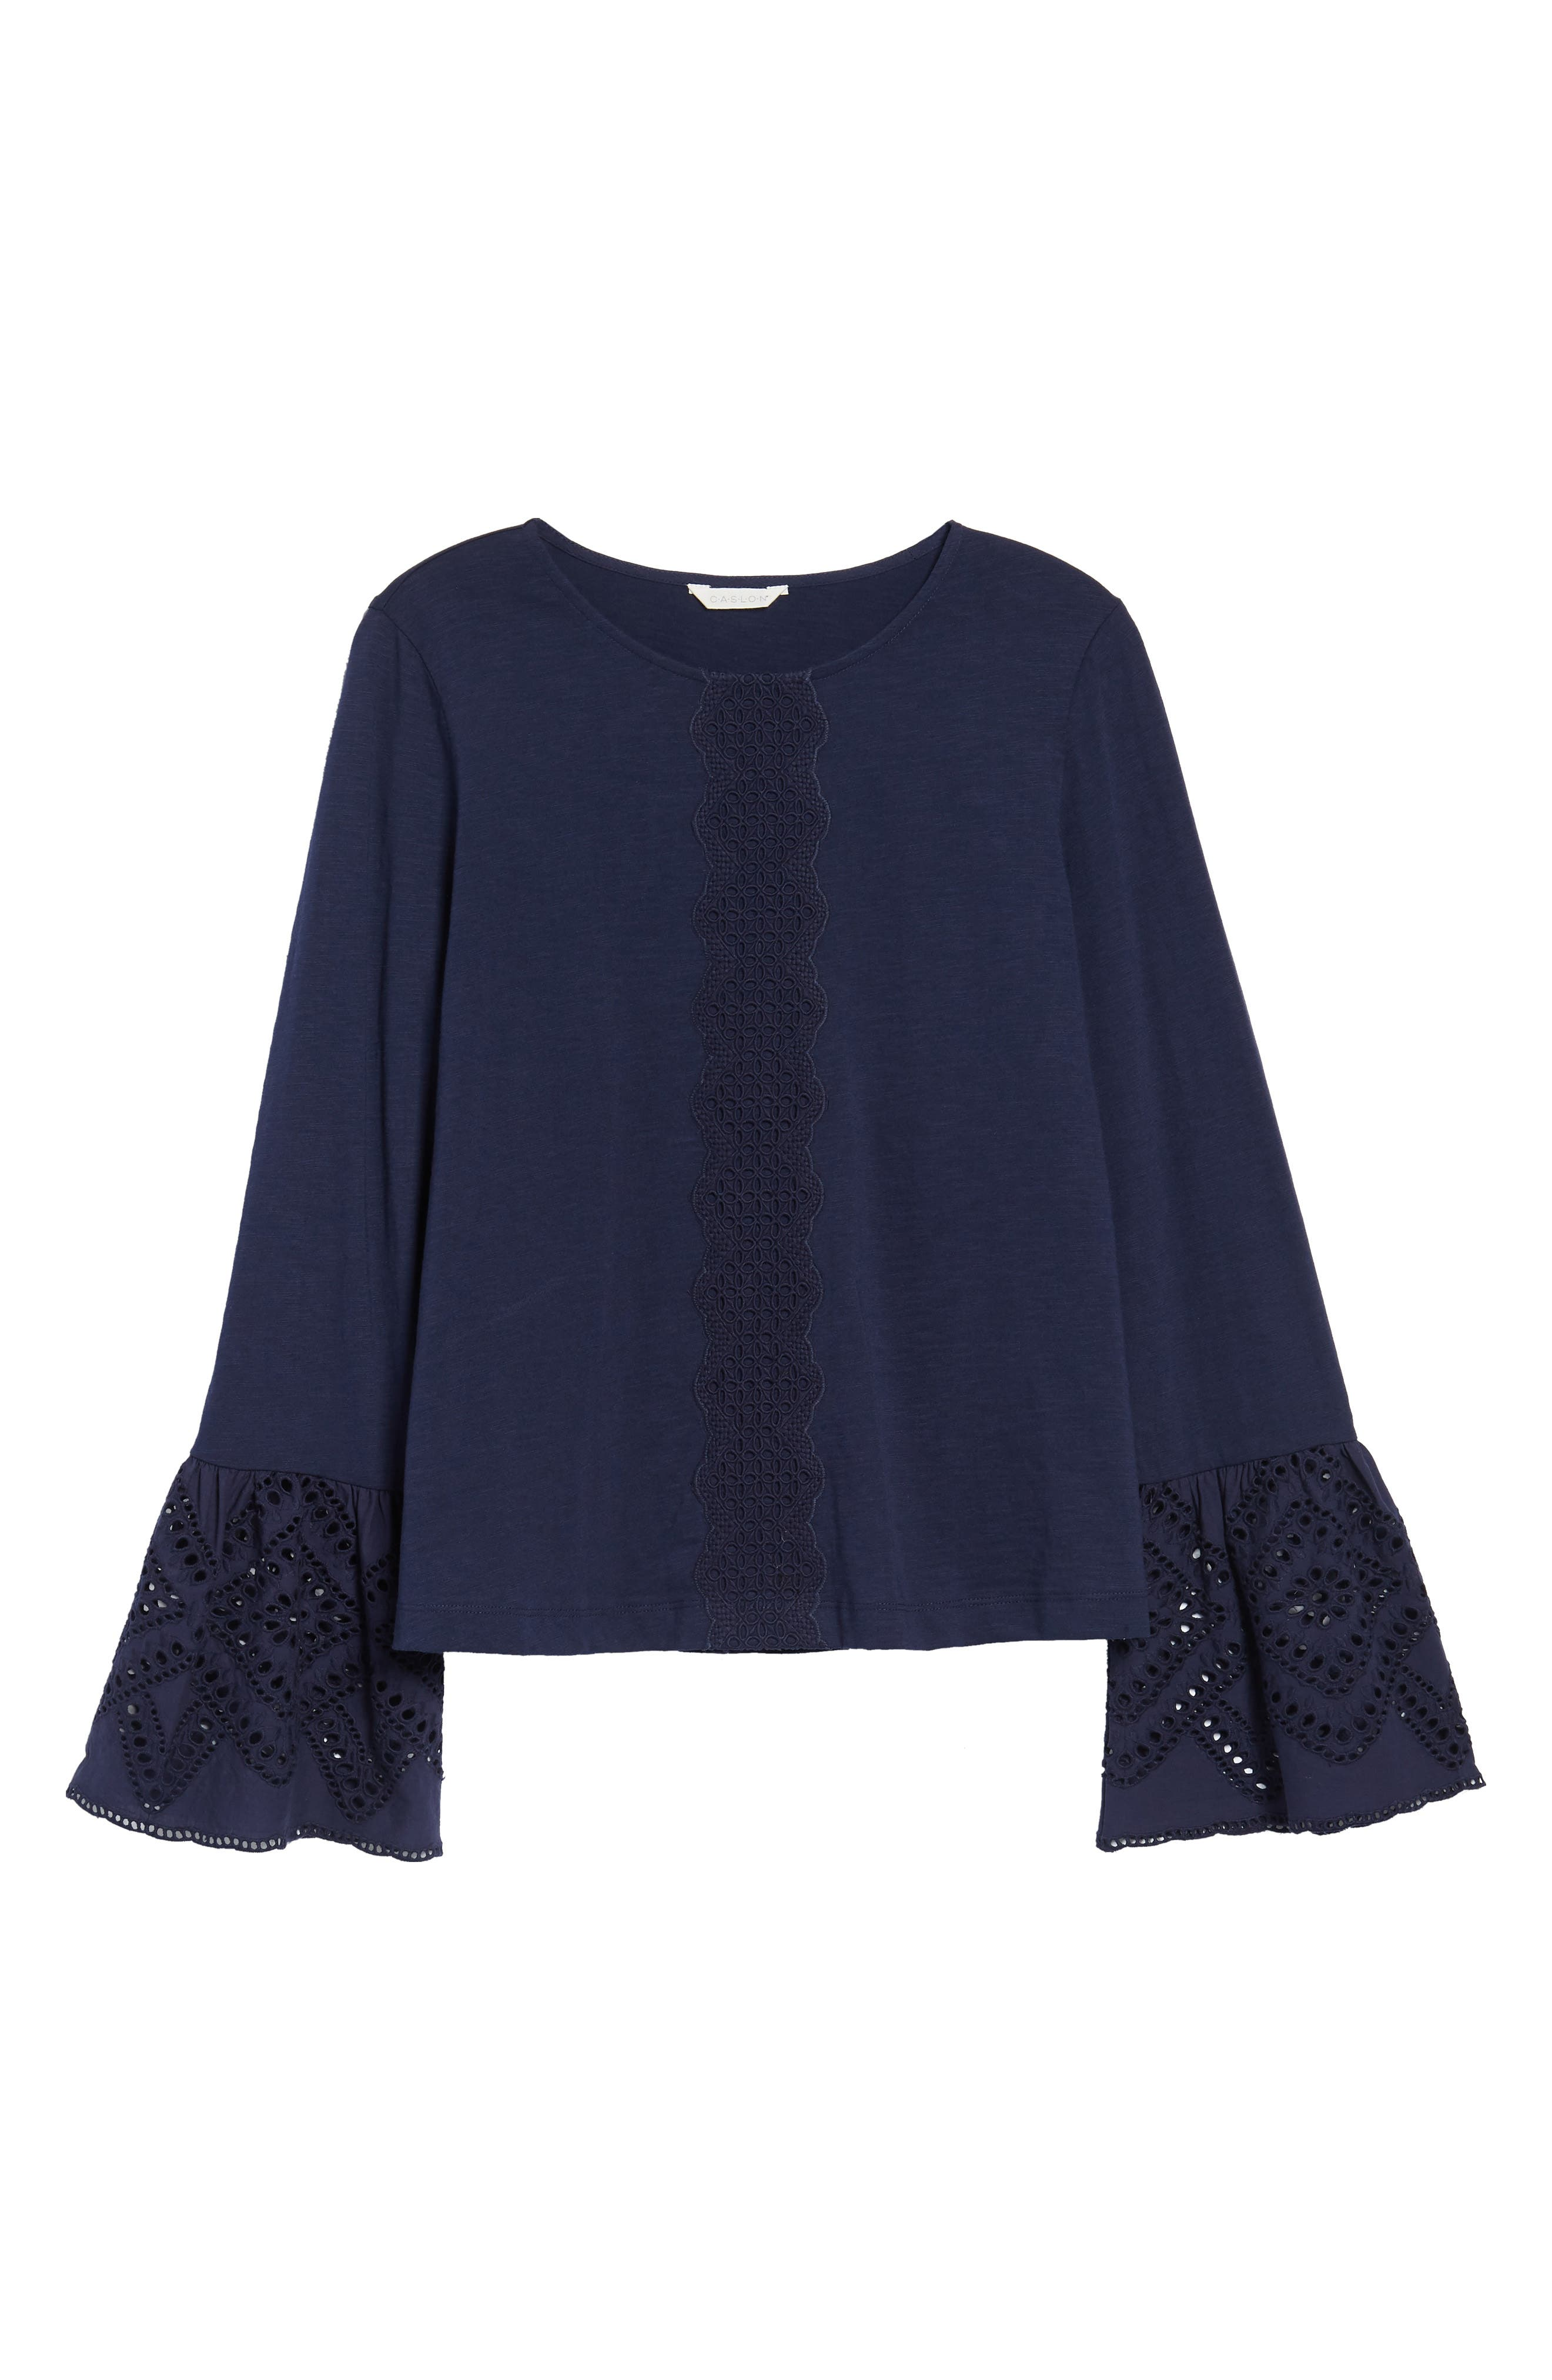 Eyelet Bell Sleeve Top,                             Alternate thumbnail 6, color,                             Navy Peacoat